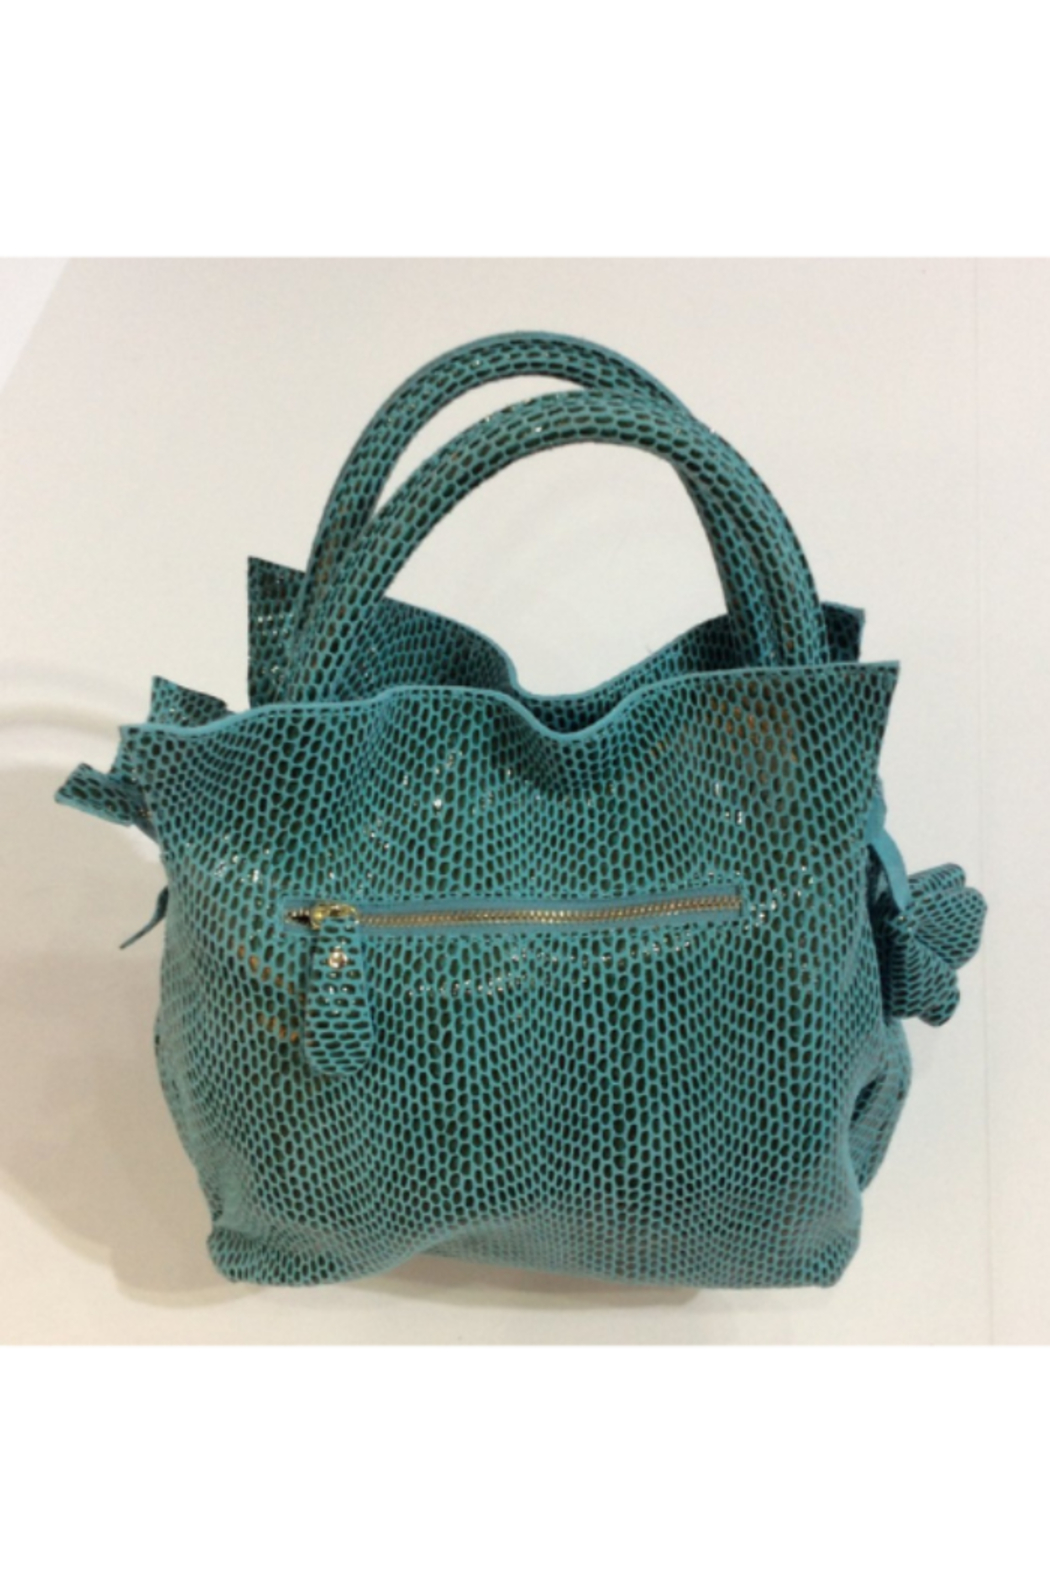 Giuliano Embossed teal and grey Italian leather purse in faux reptile pattern - Front Full Image